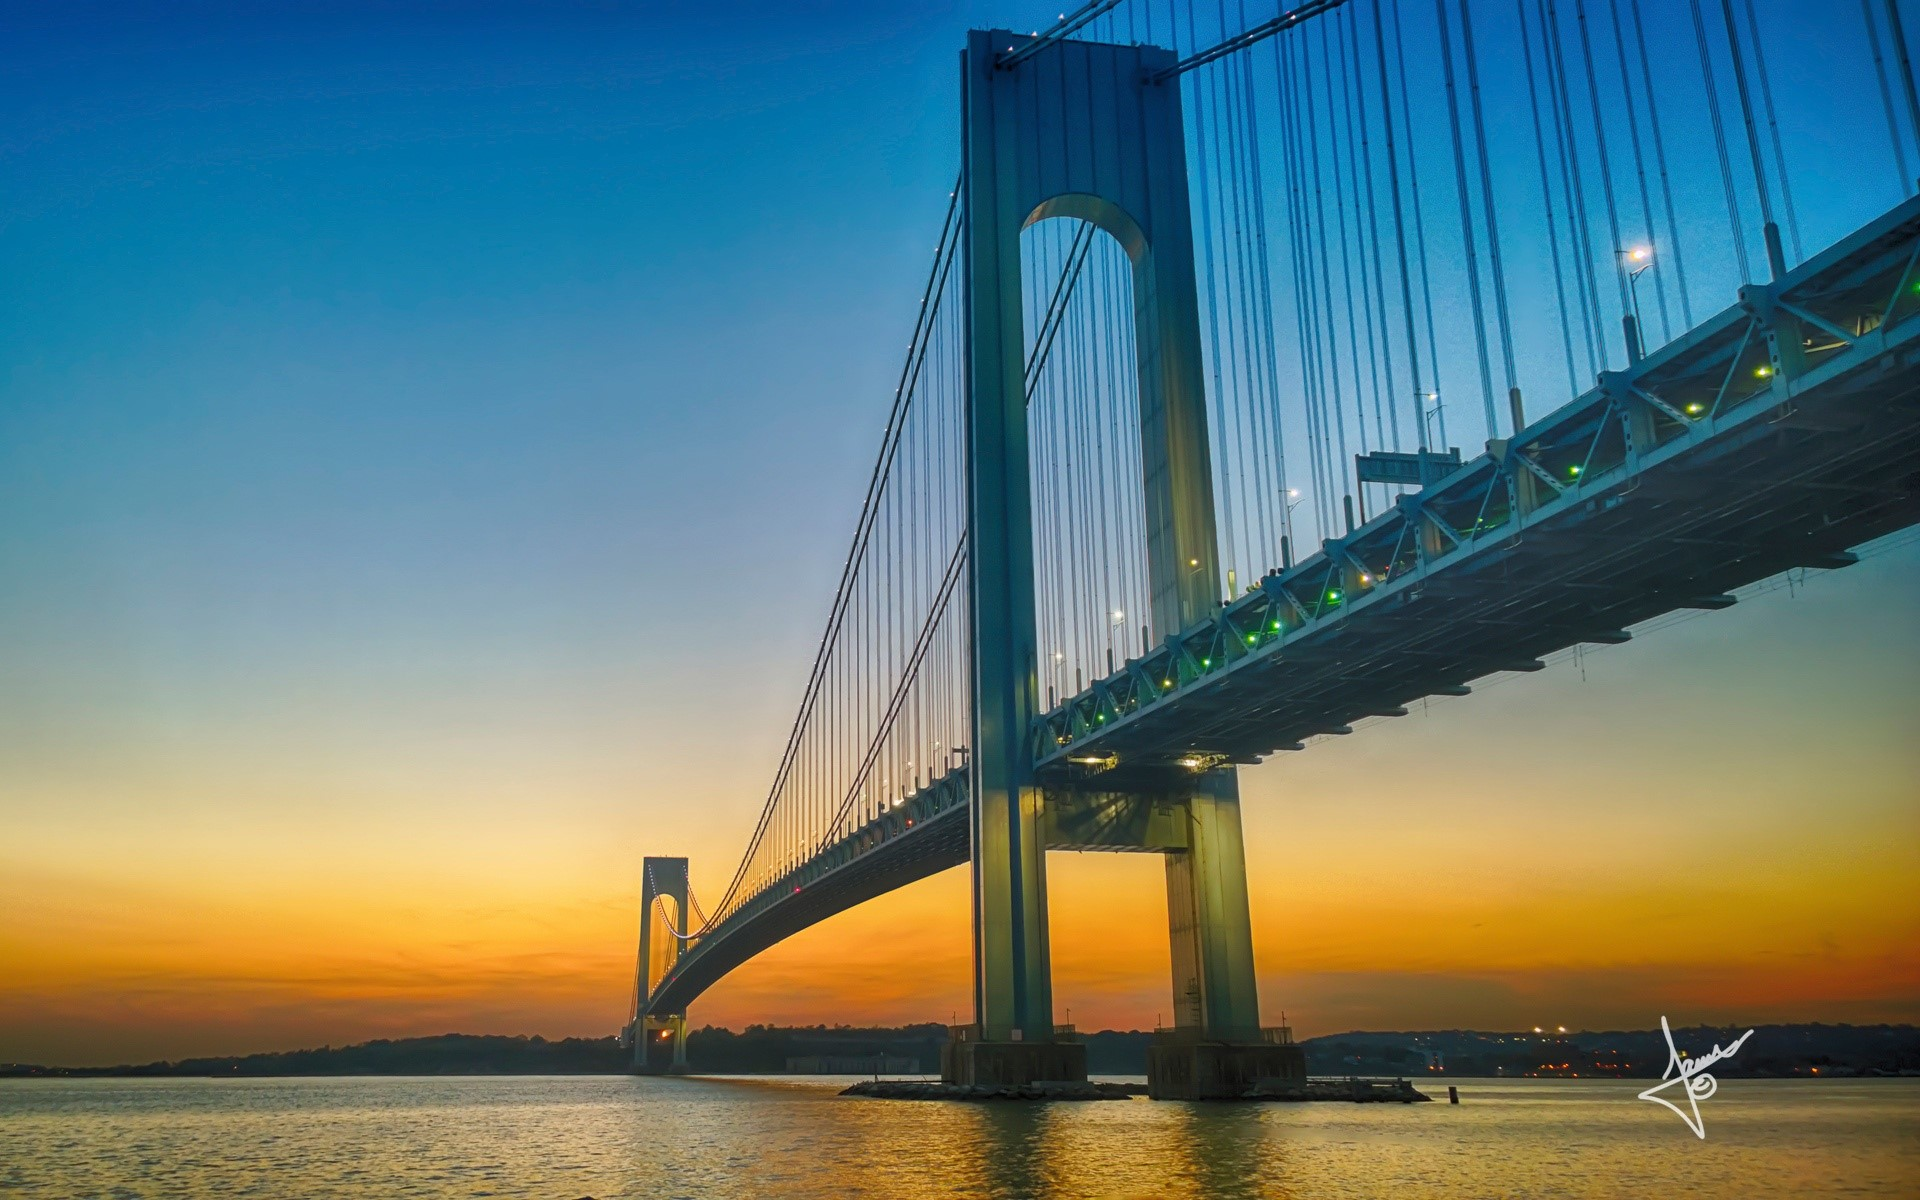 Wallpaper Verrazano Bridge